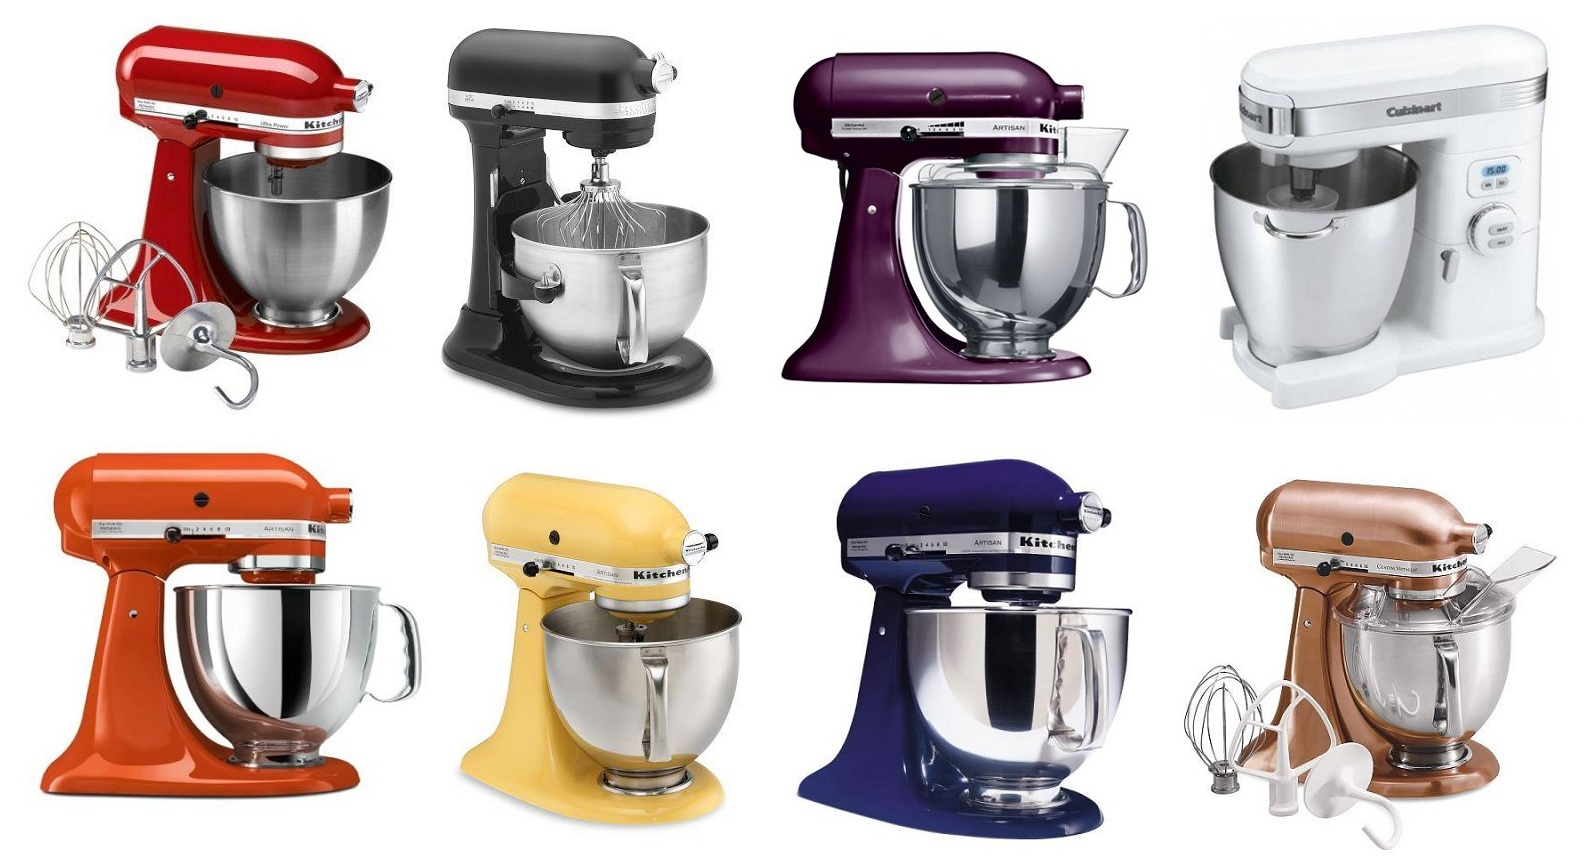 Kitchenaid Artisan Mixer Color Design Choices Pictures to Pin on